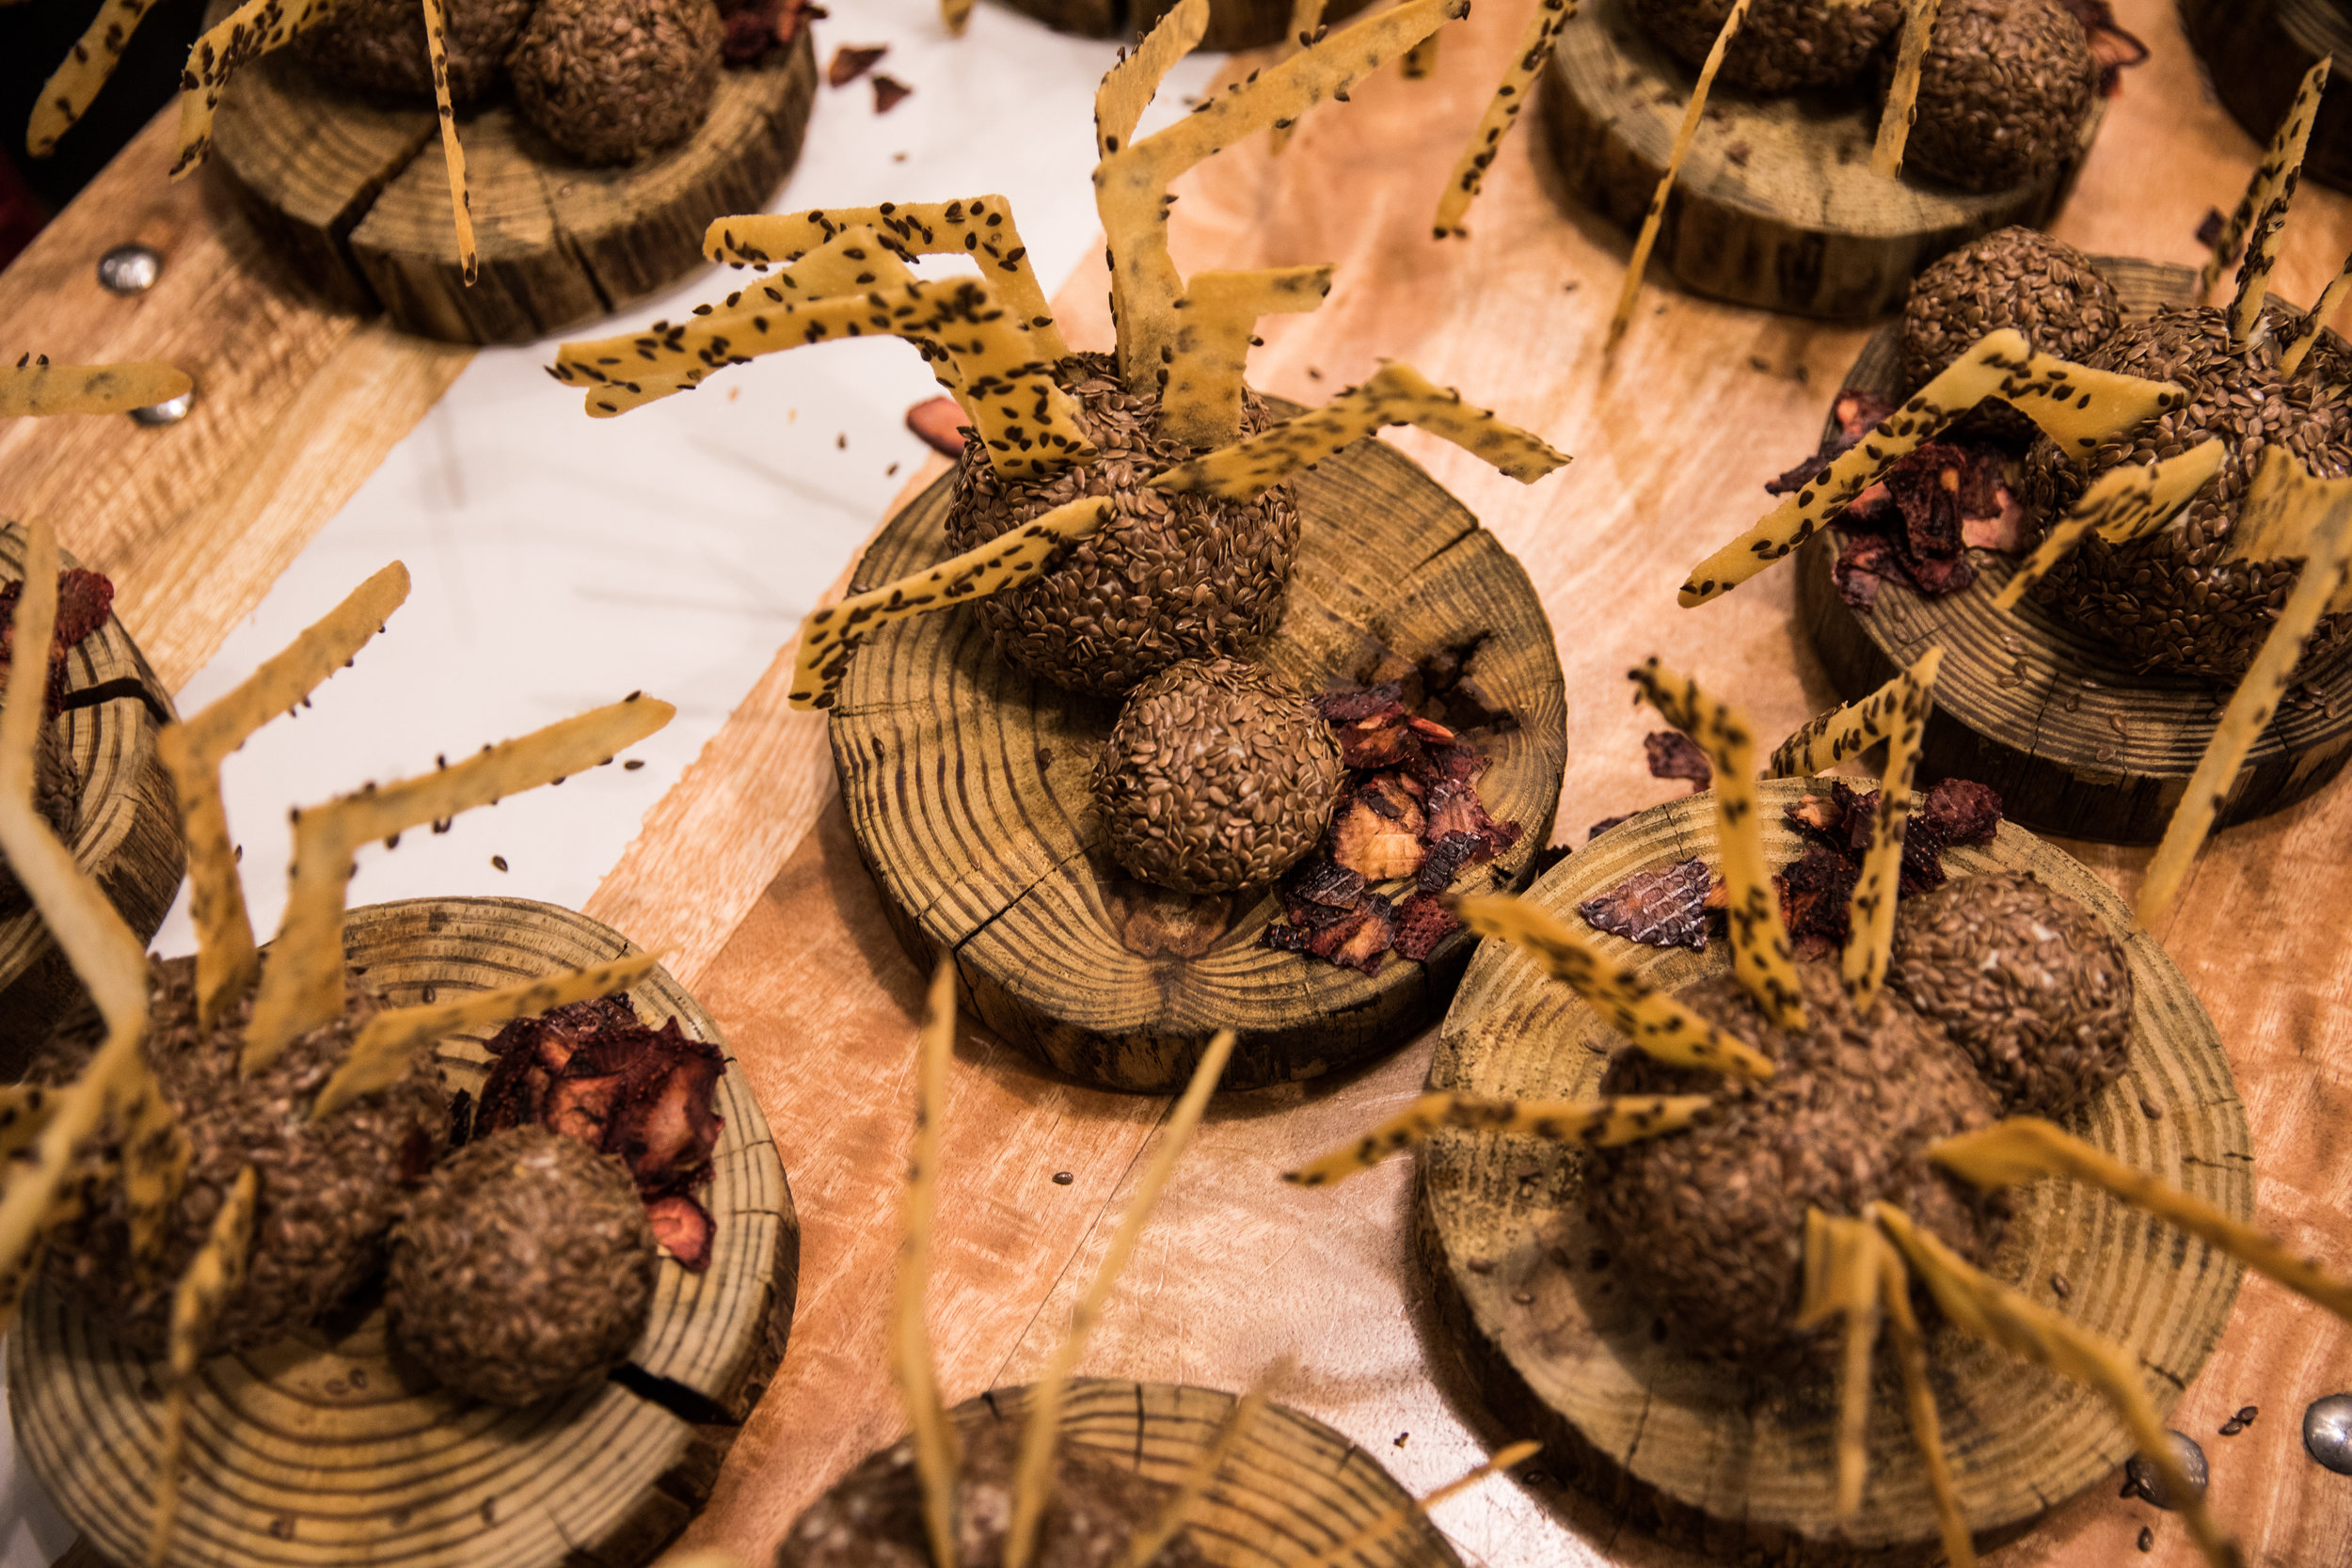 Plates of food on a tabletop, made to look like large spiders, in keeping with the event's macabre theme